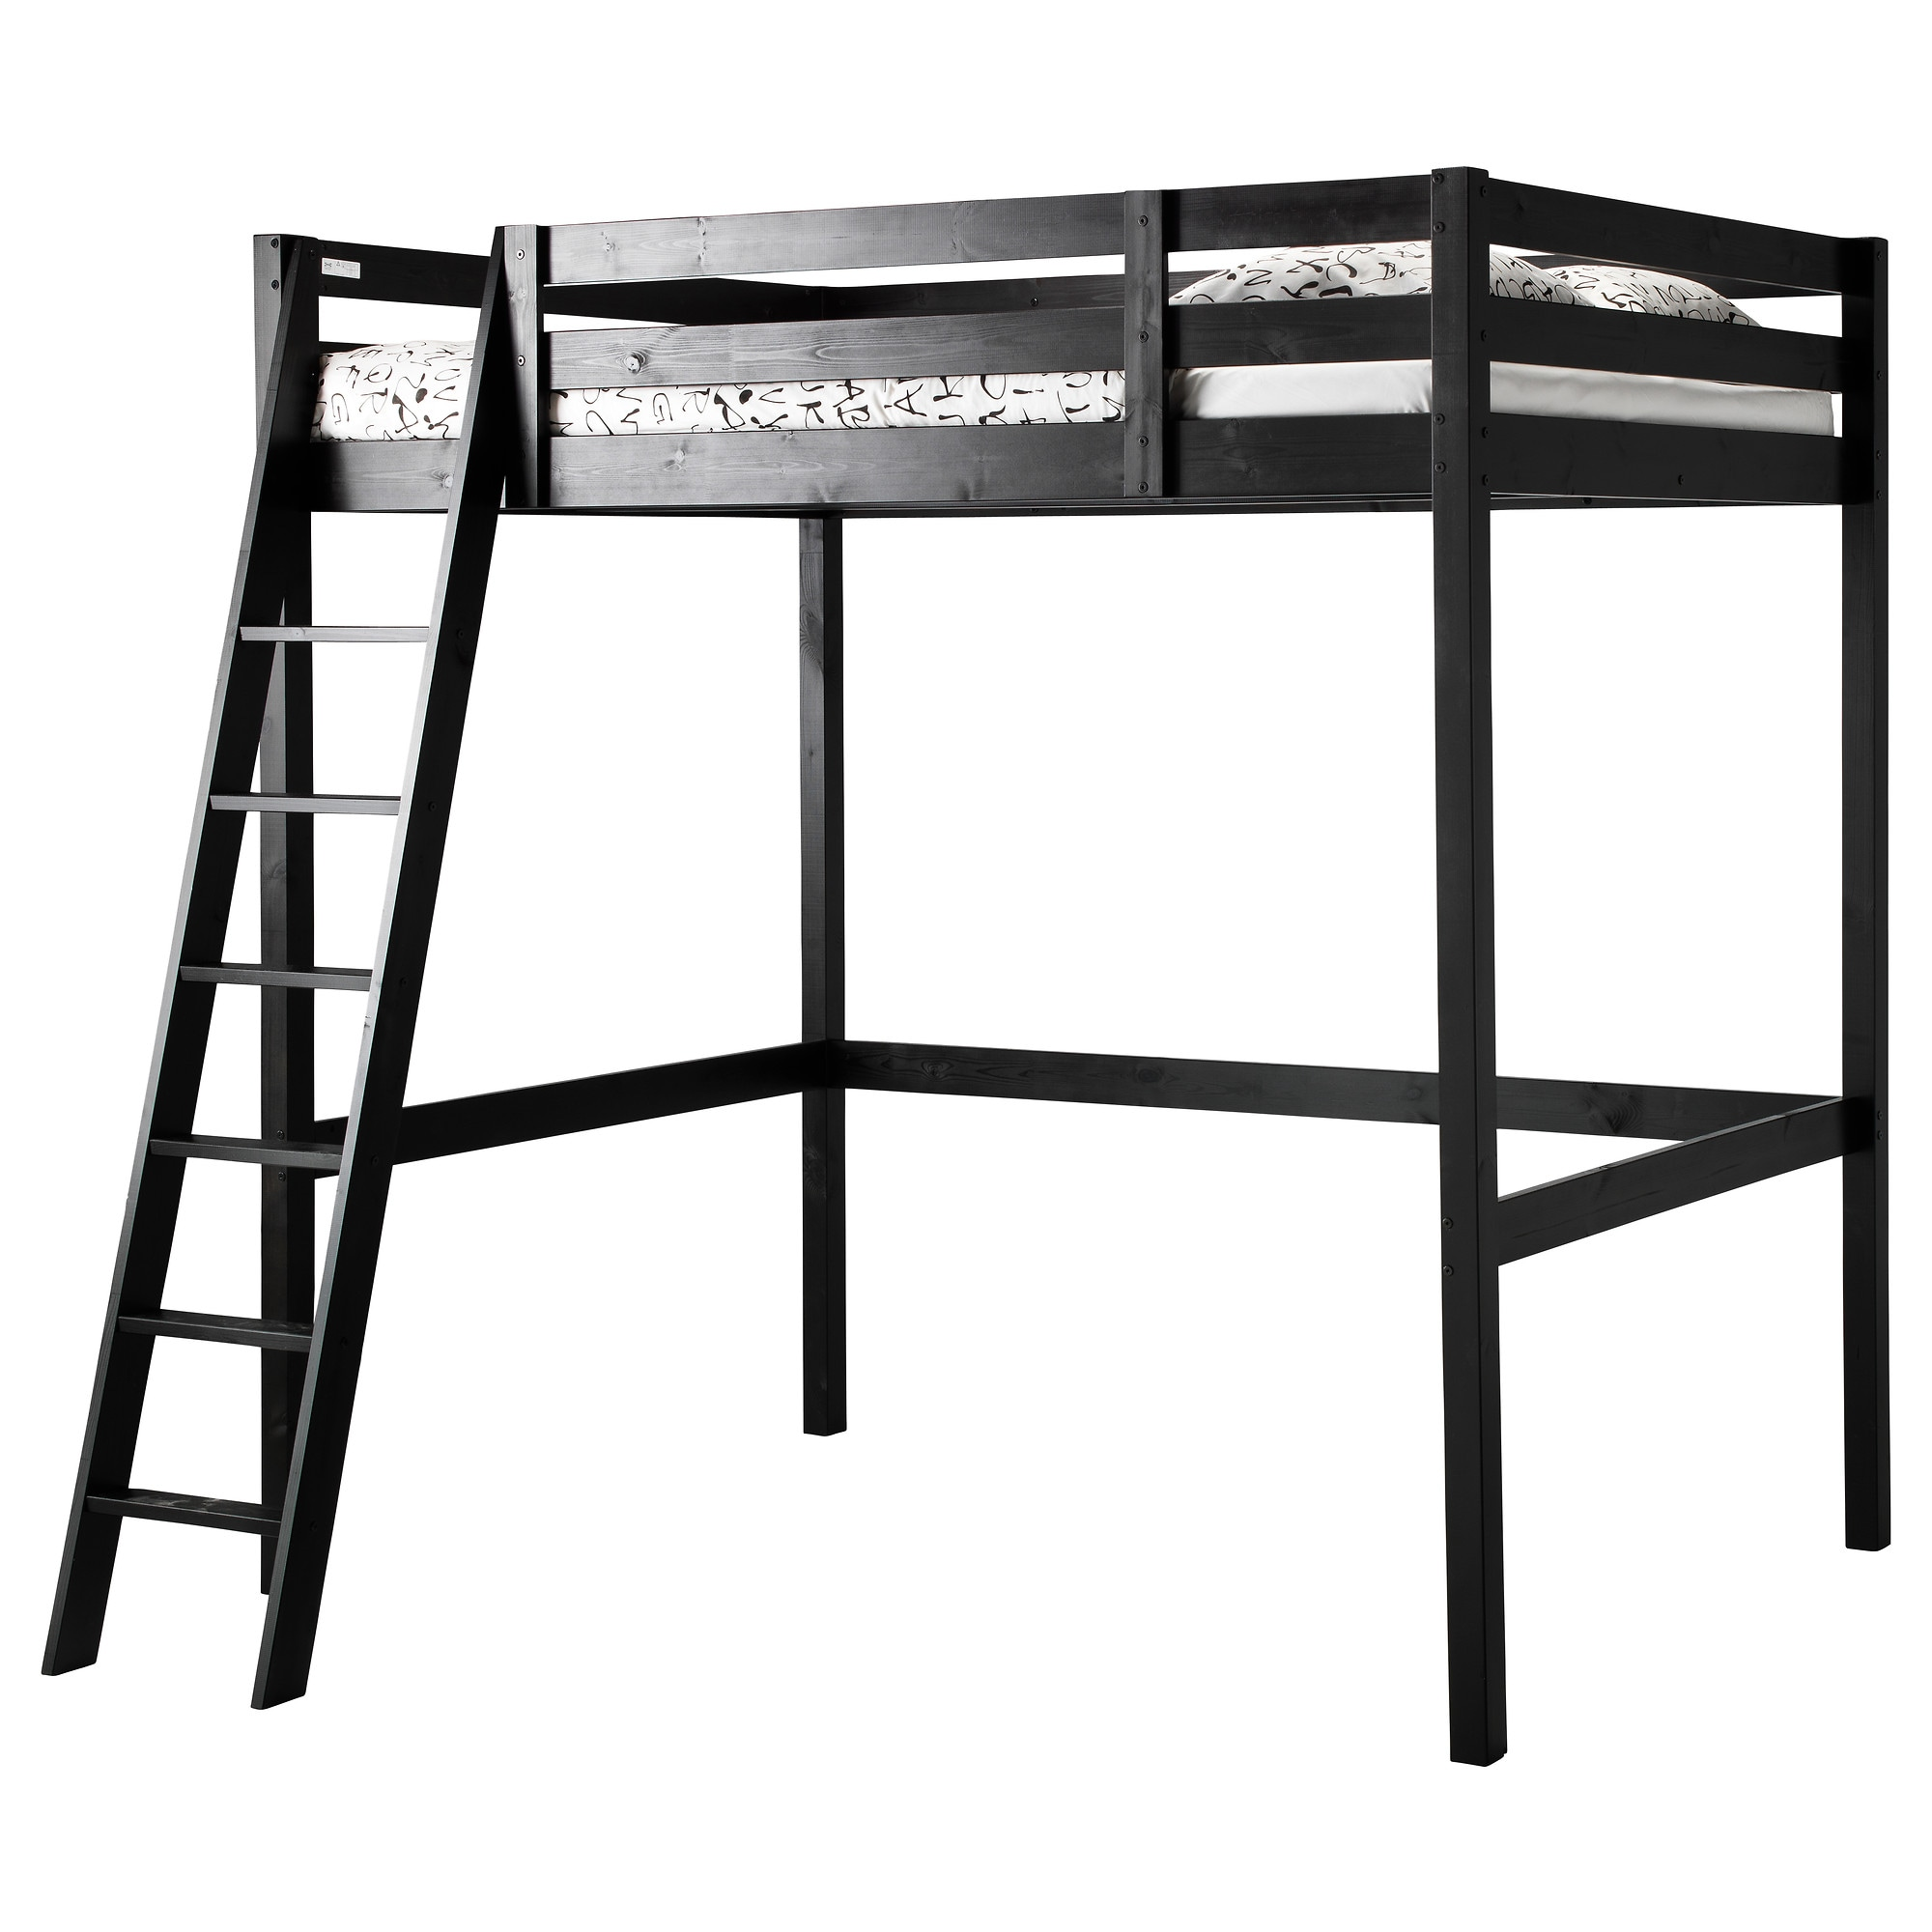 ikea loft bed weight limit stora my marketing journey ForIkea Stora Loft Bed Weight Limit